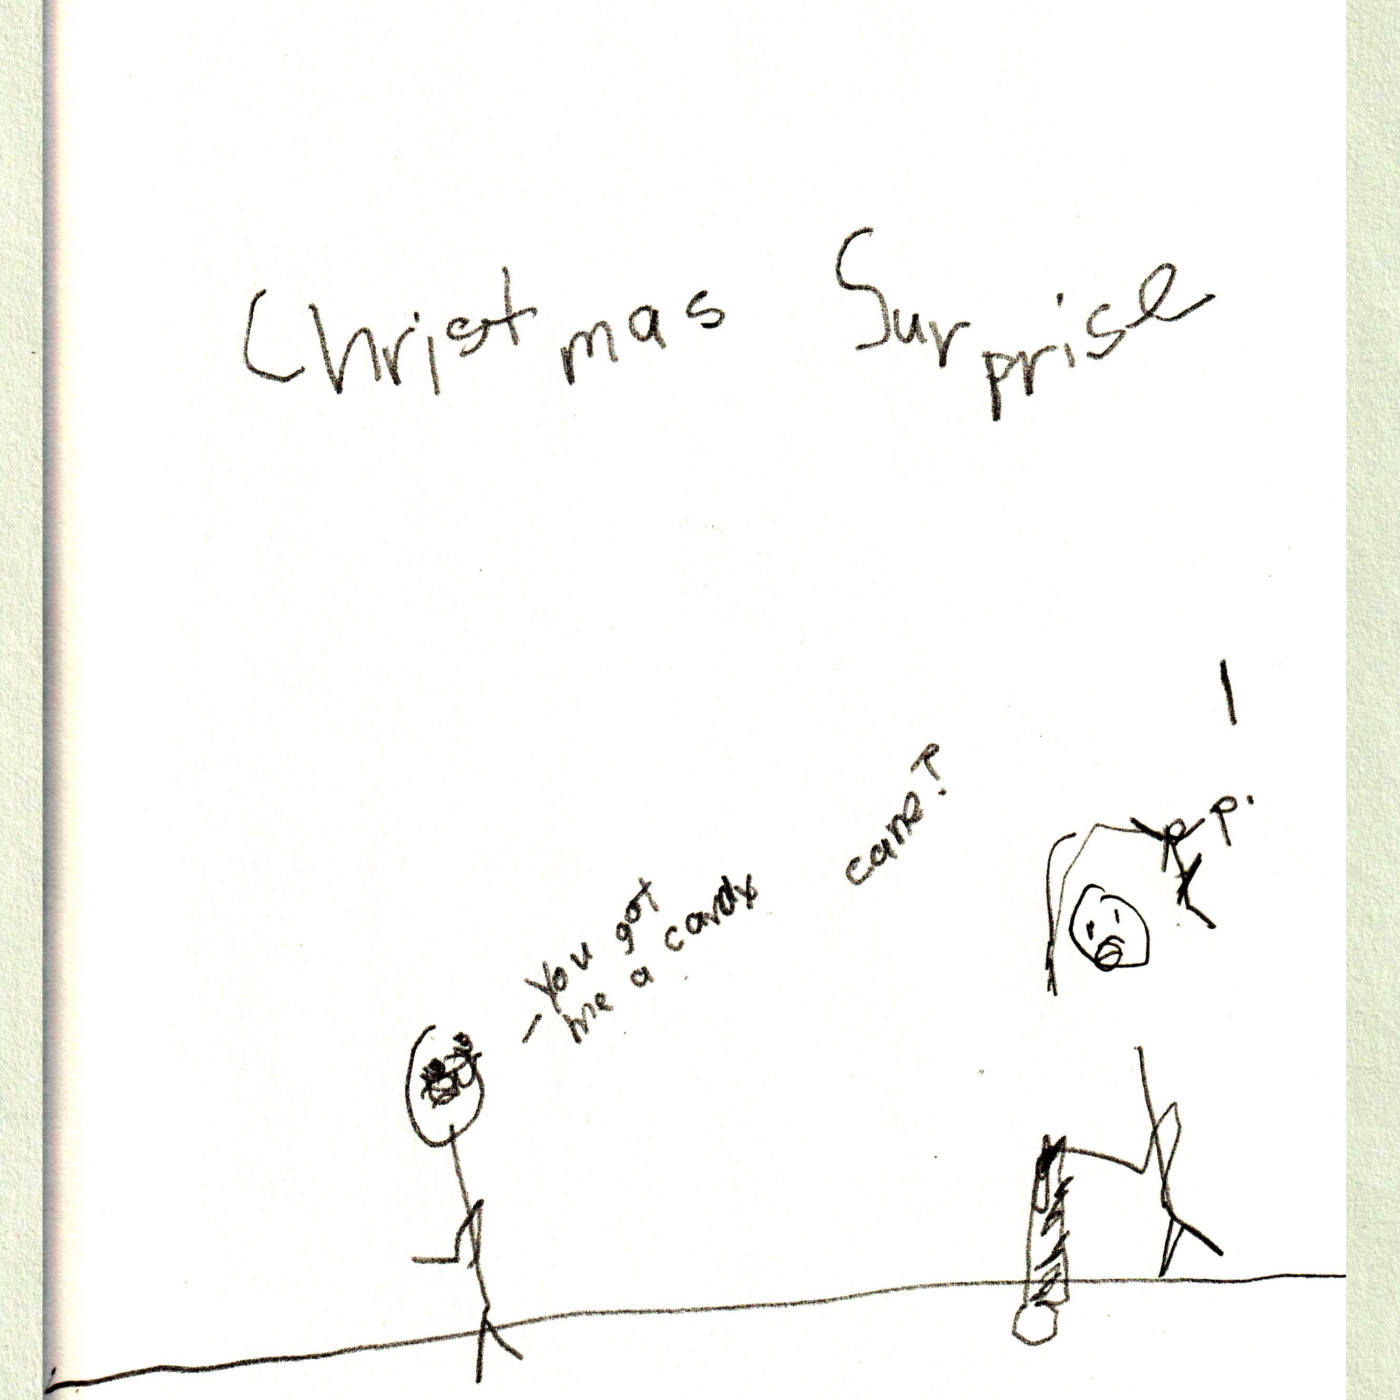 21. The Podisode About Christmas Shopping And Surprises